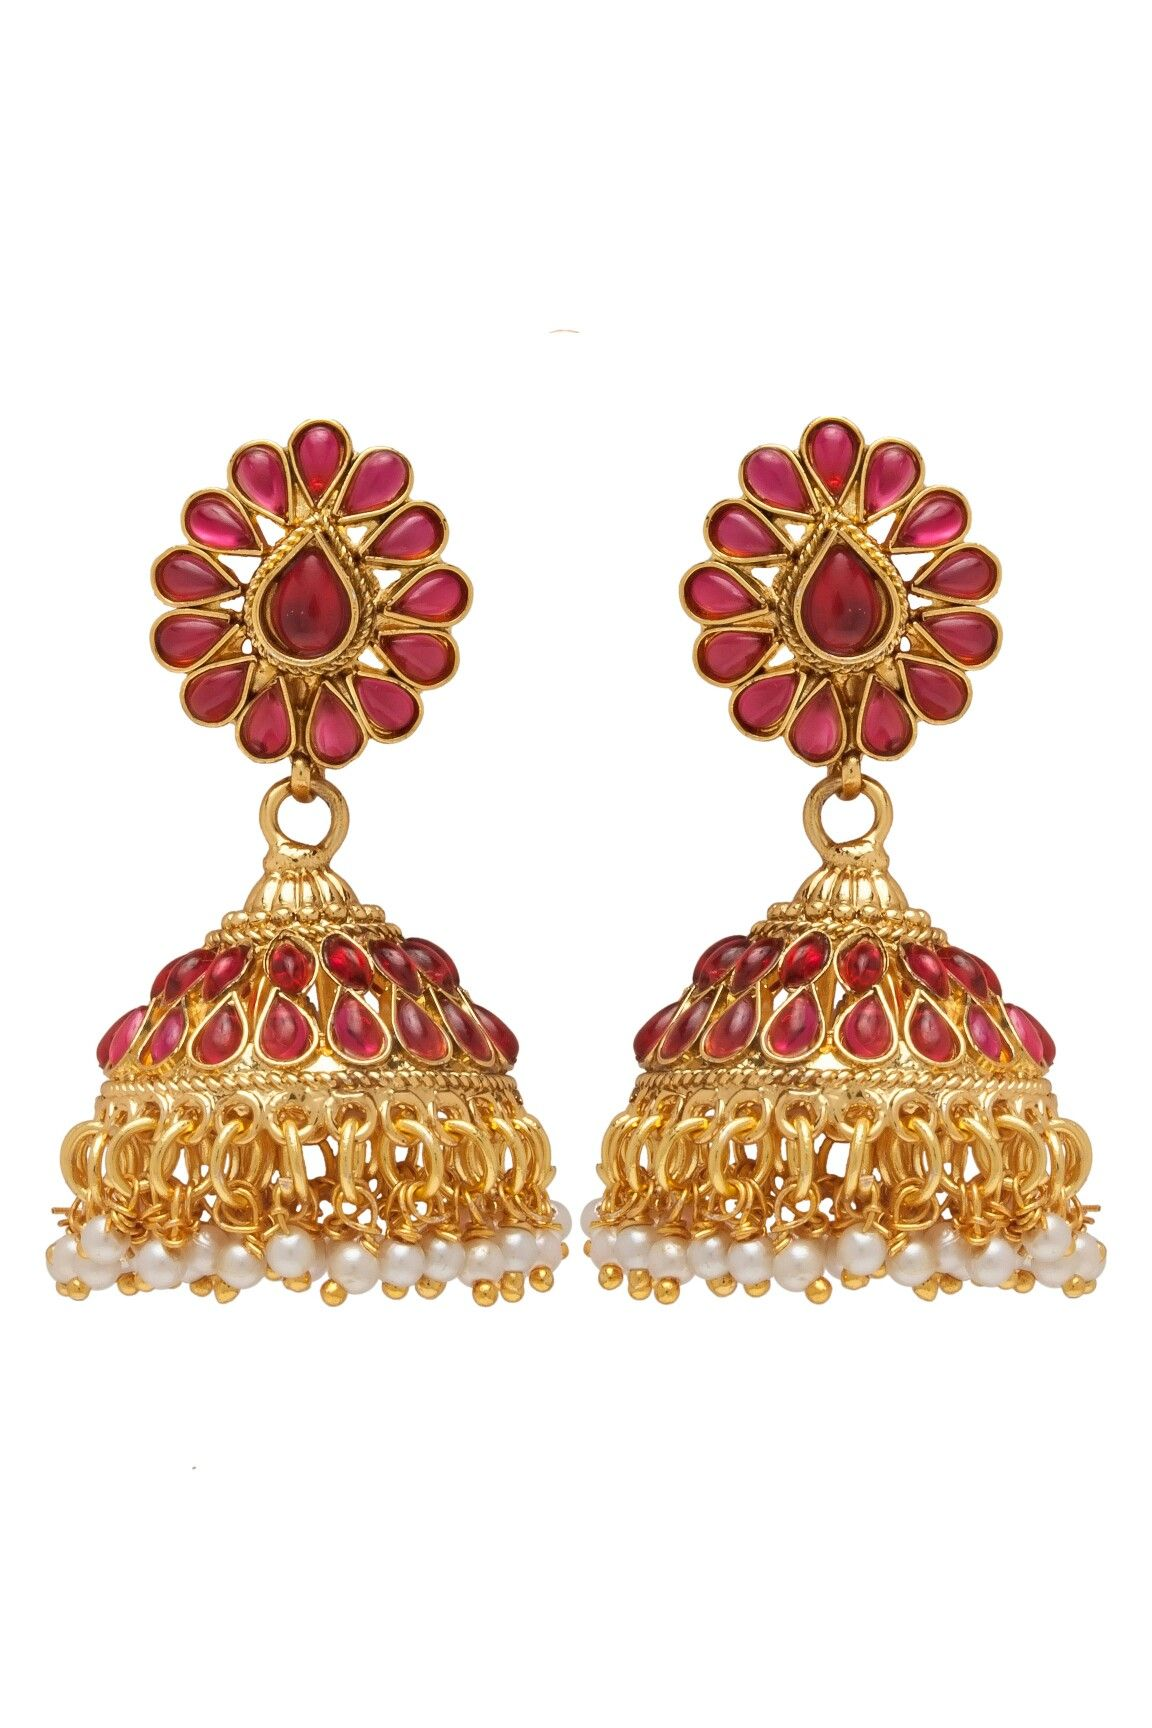 c12f7ef31 Antique Kemp stone jhumka Rs.650 contact or whtsup on +91 8080256582  #antique #gold #plated #jhumki #earring #designer #jhumka #earring #south # indian ...